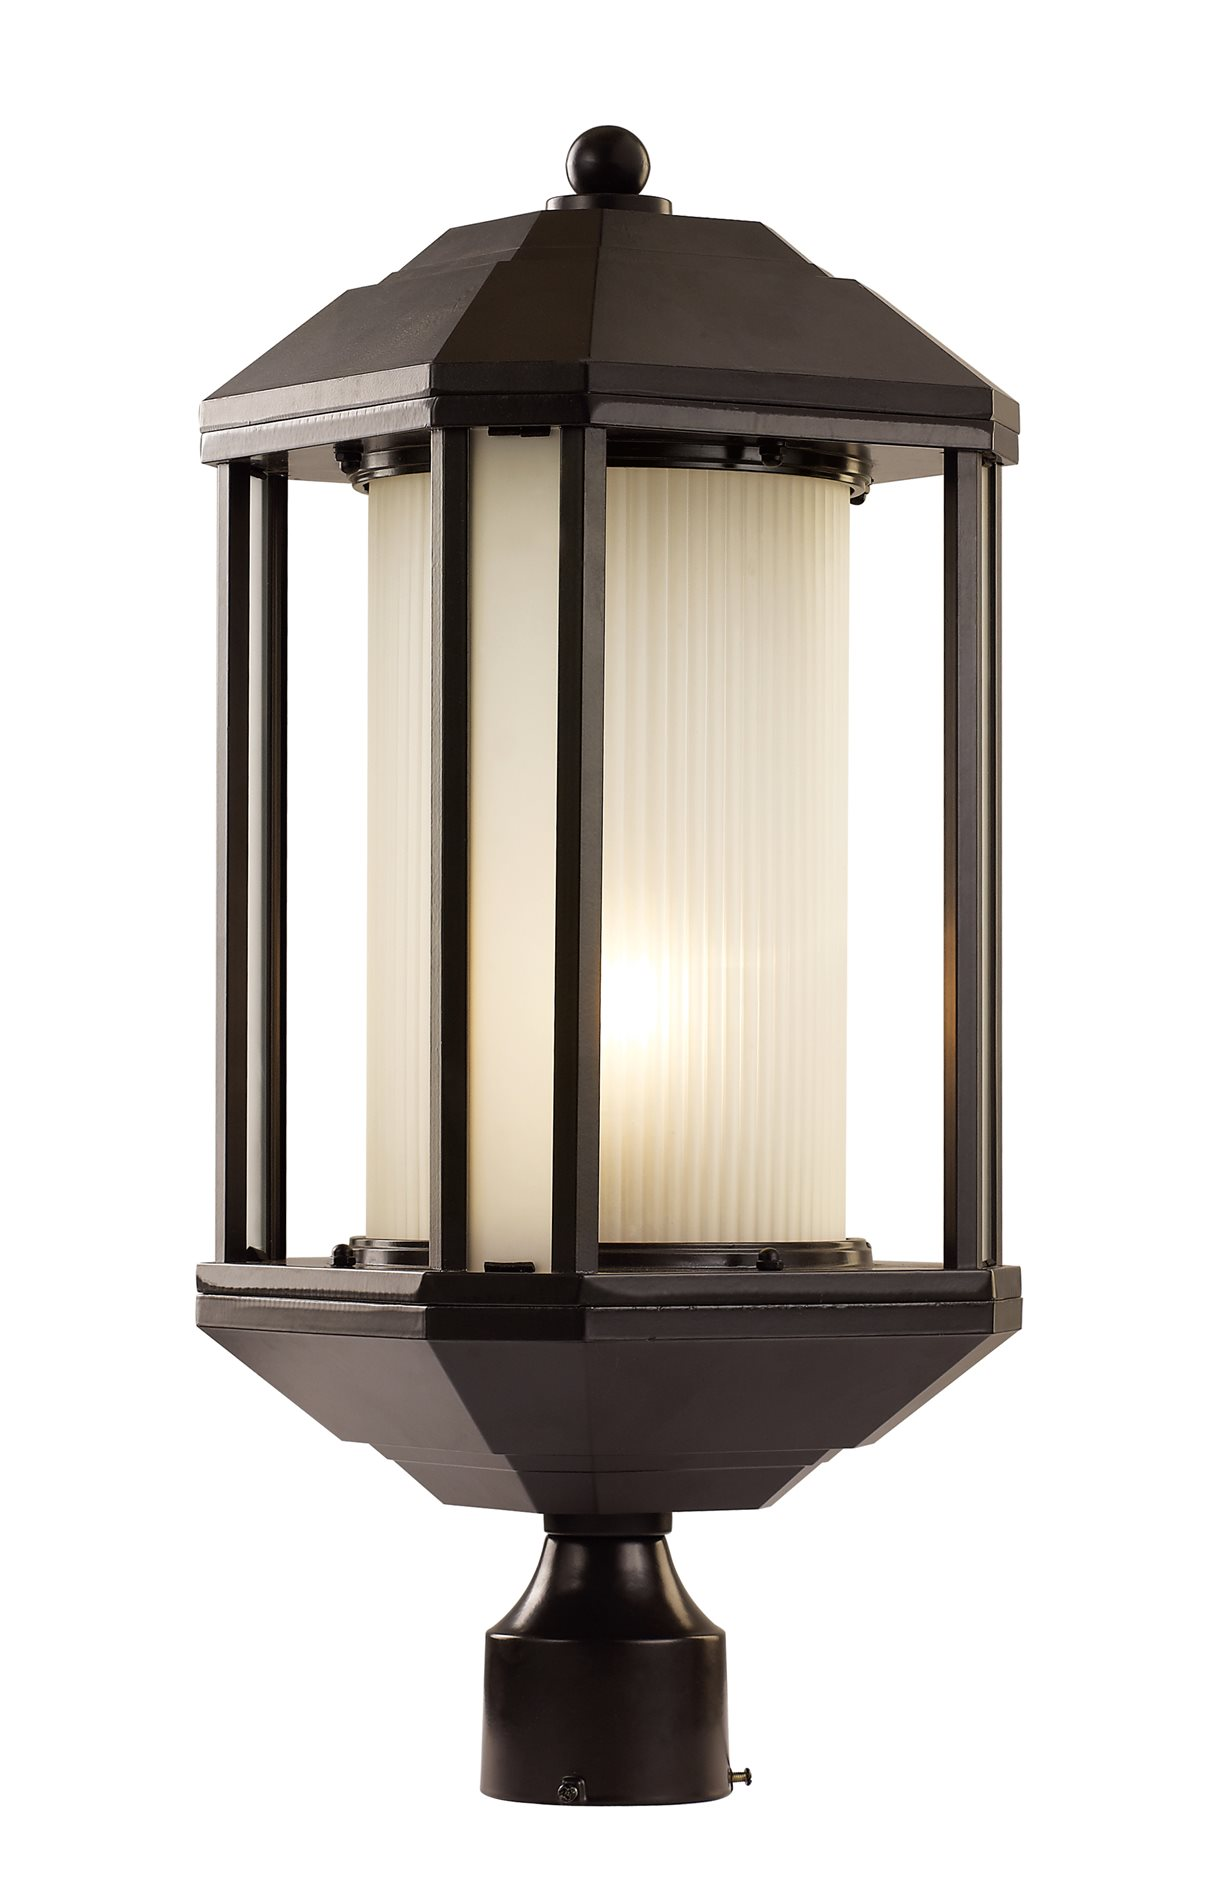 Trans globe lighting 40256 rob downtown trolley modern for Contemporary outdoor post light fixtures